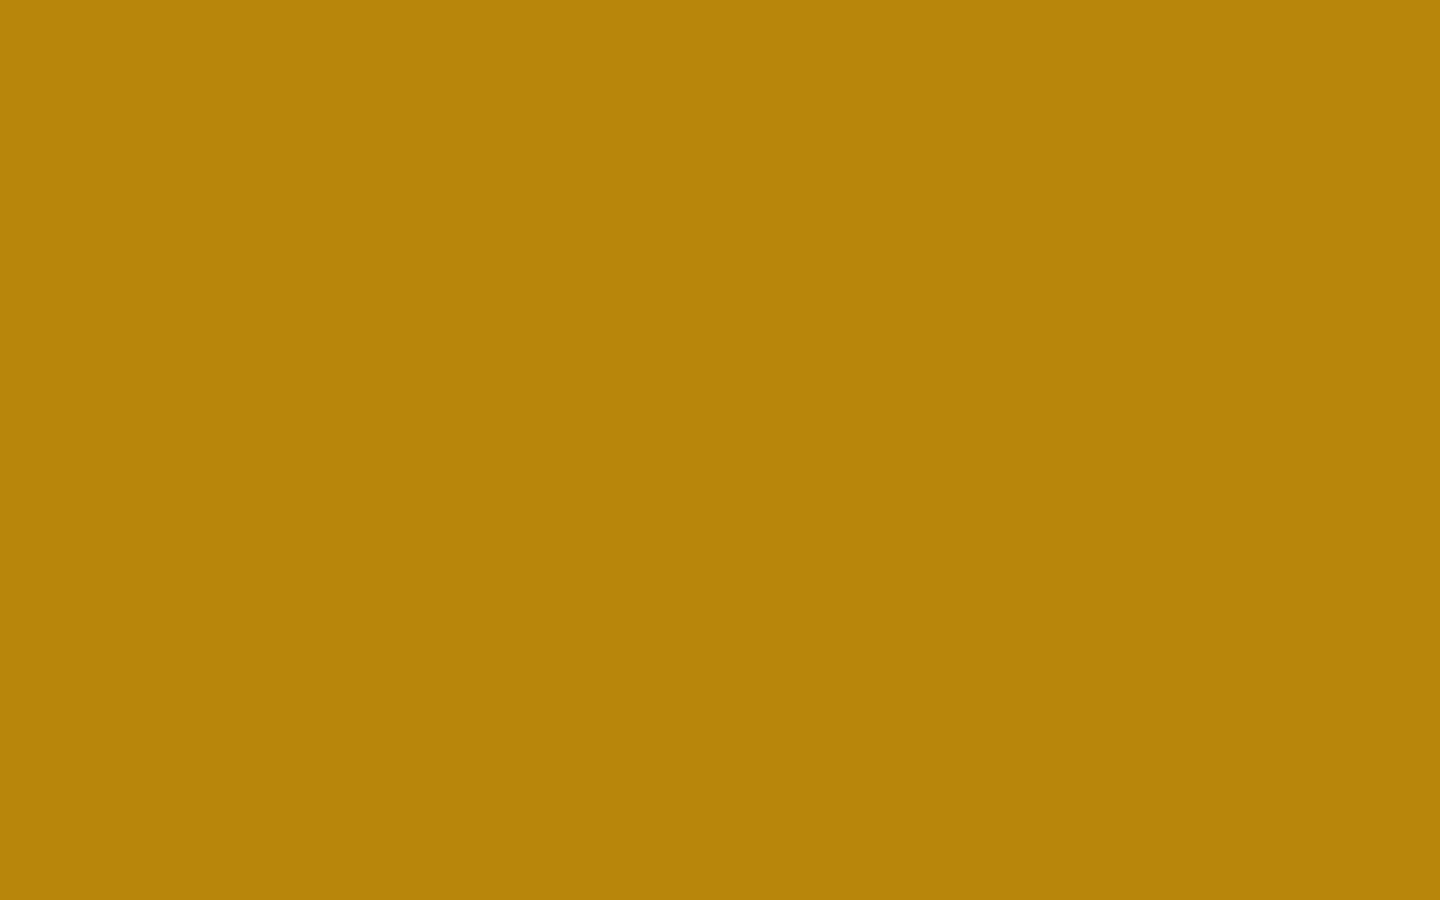 1440x900 Dark Goldenrod Solid Color Background